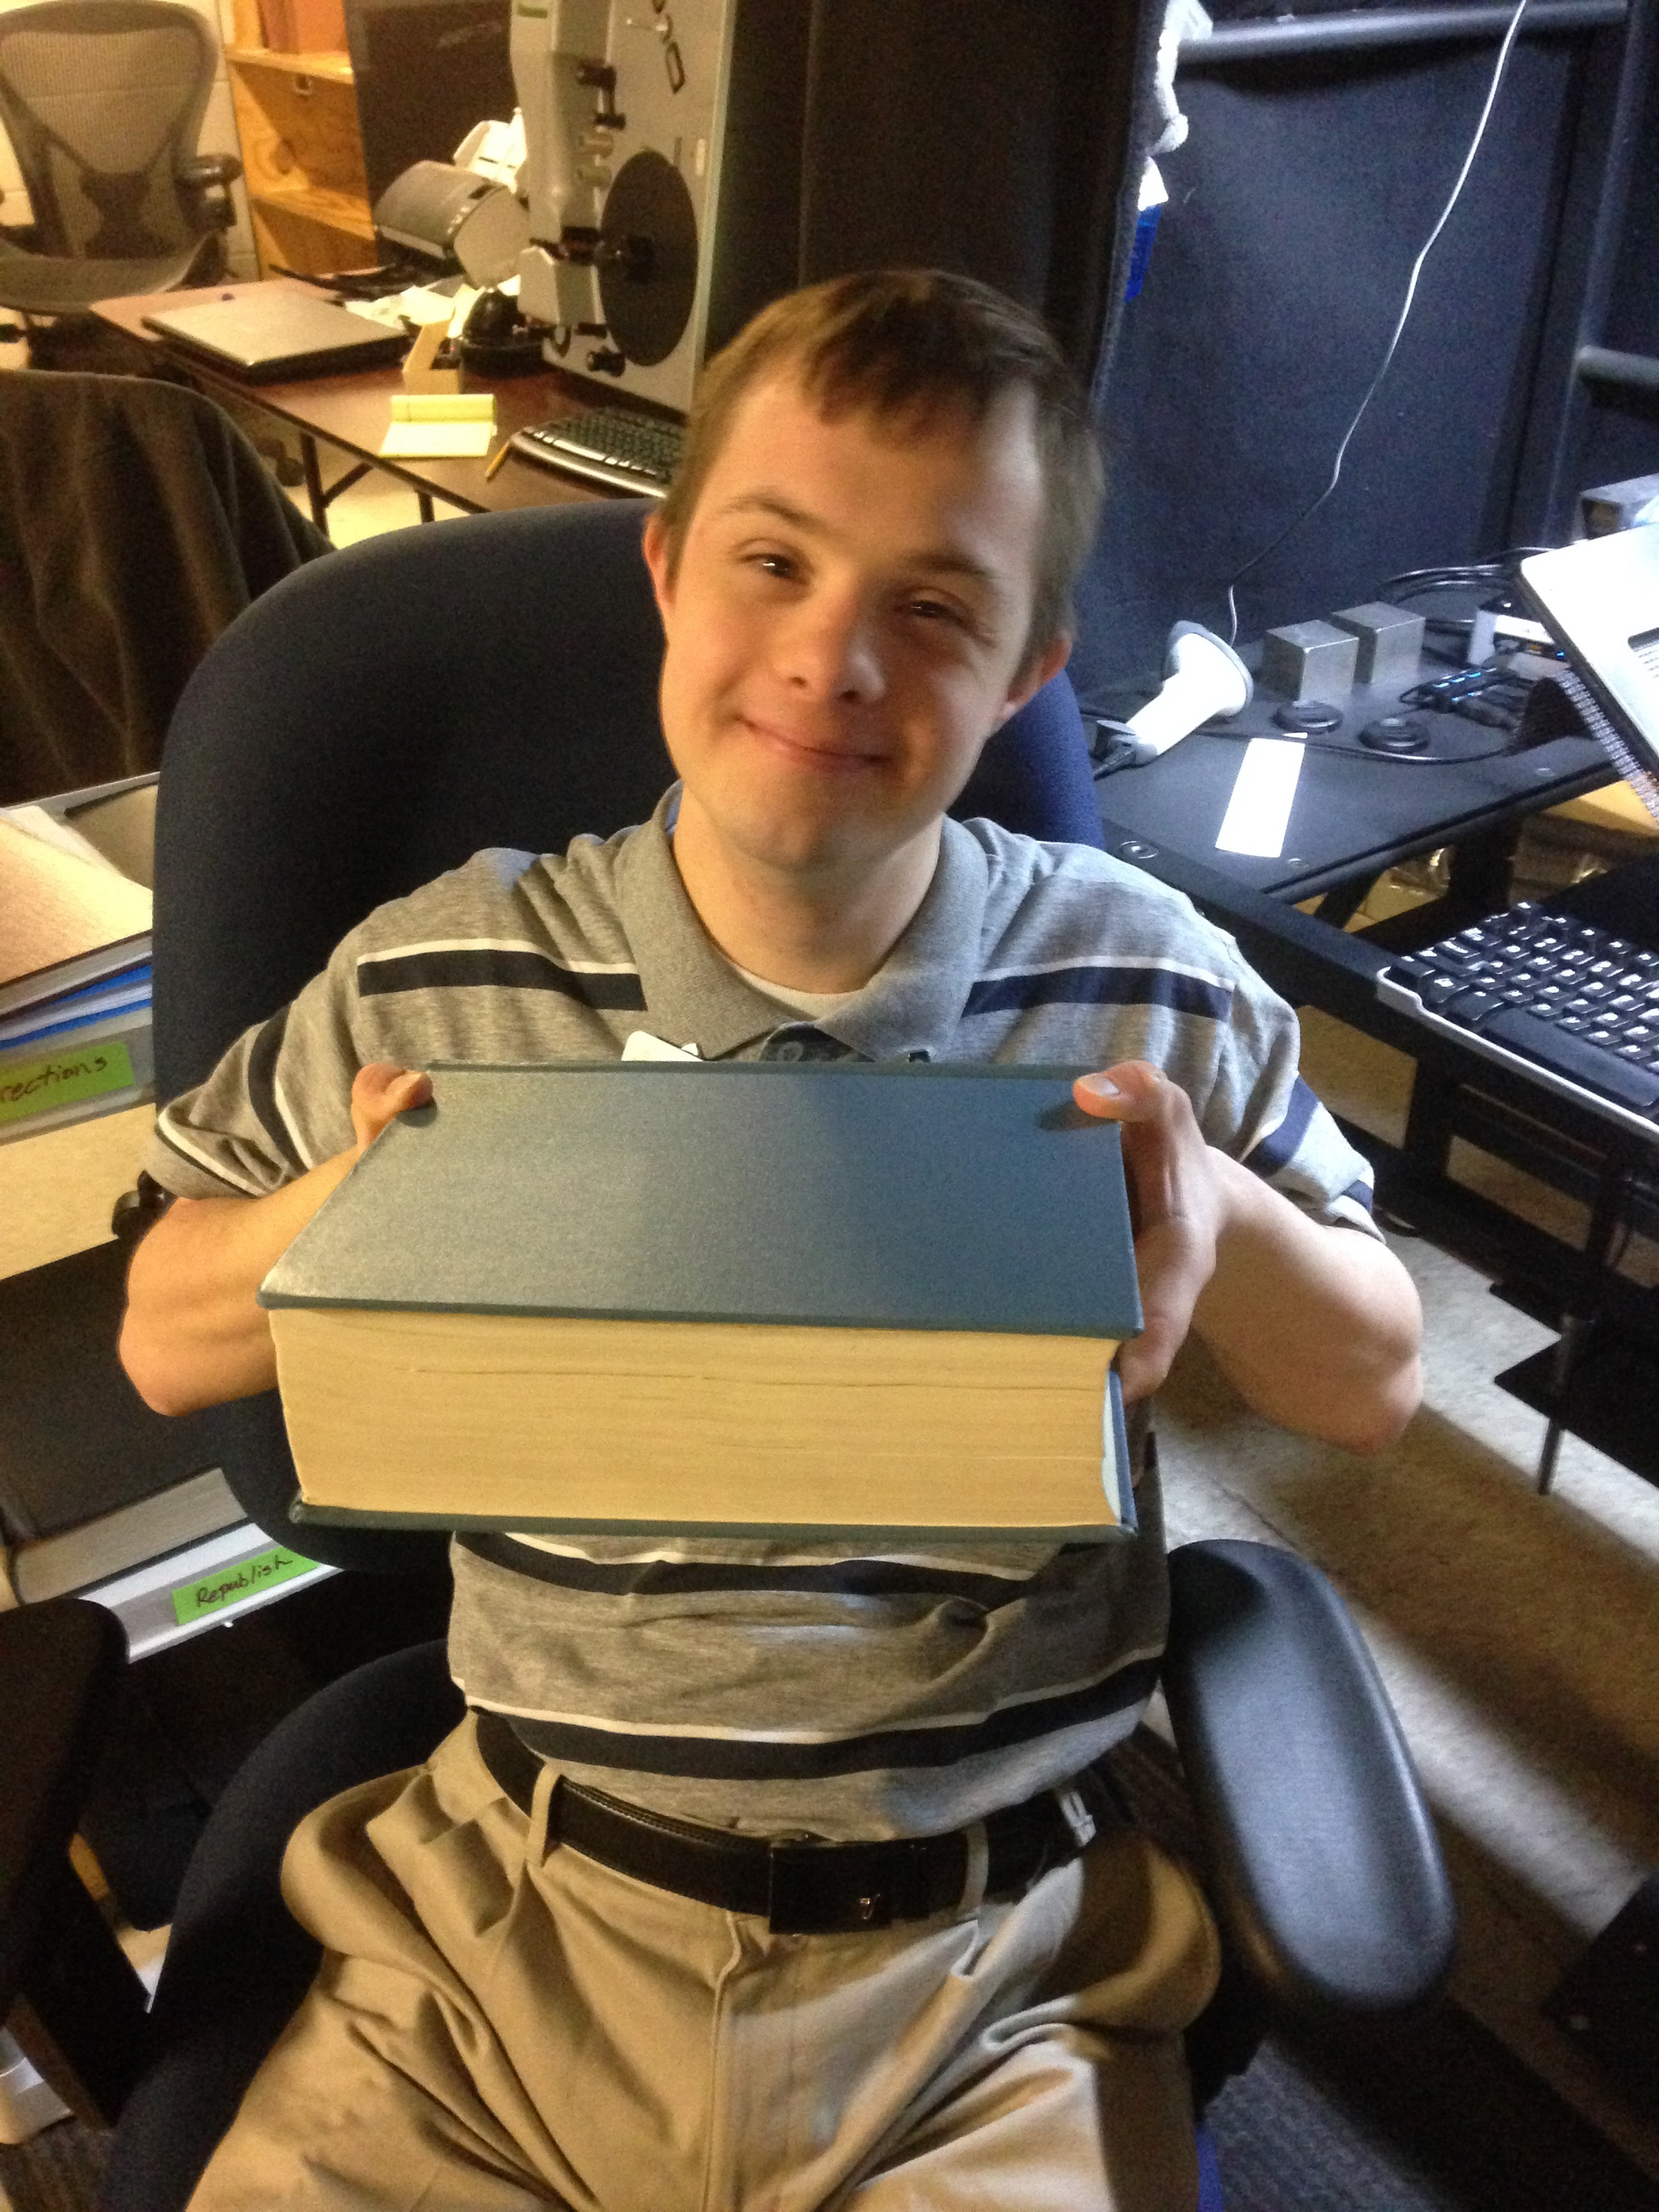 Russell Taylor, who has Downs syndrome, finds a book to scan at the Allen County Public Library in Fort Wayne, Indiana, while serving a records preservation mission with his parents.